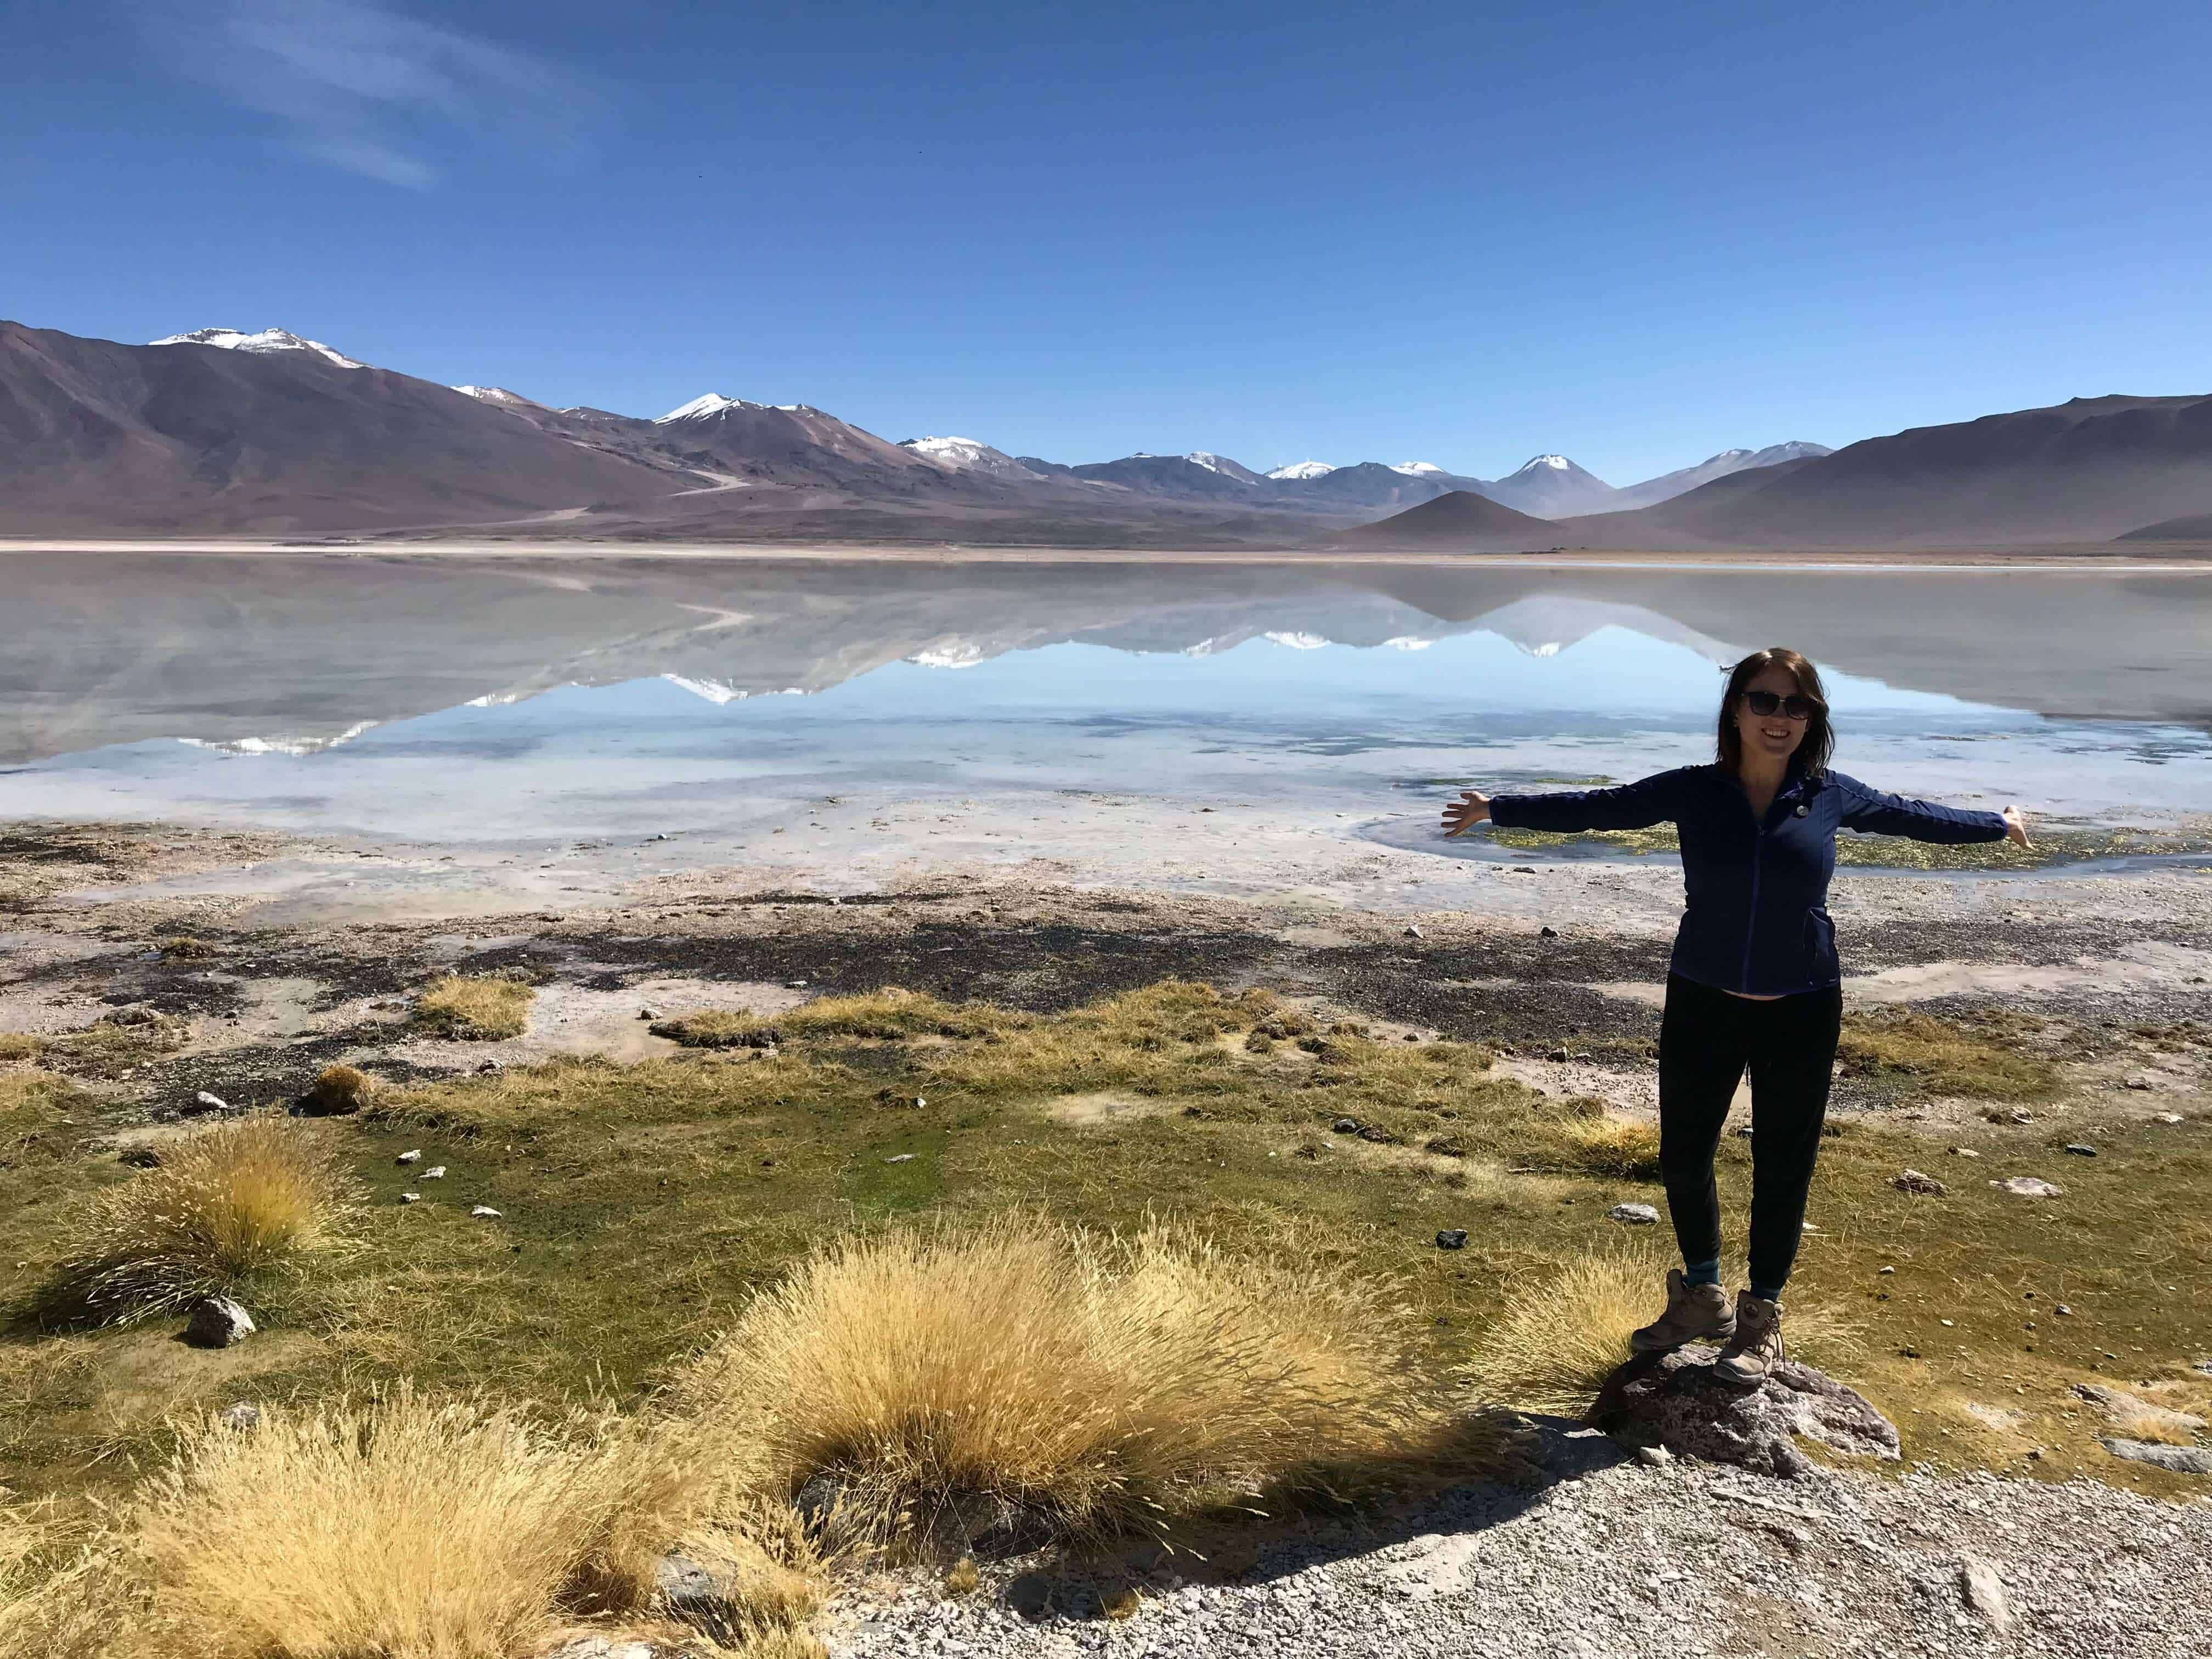 lora standing in front of Reflecting mountains and lakes in Bolivia